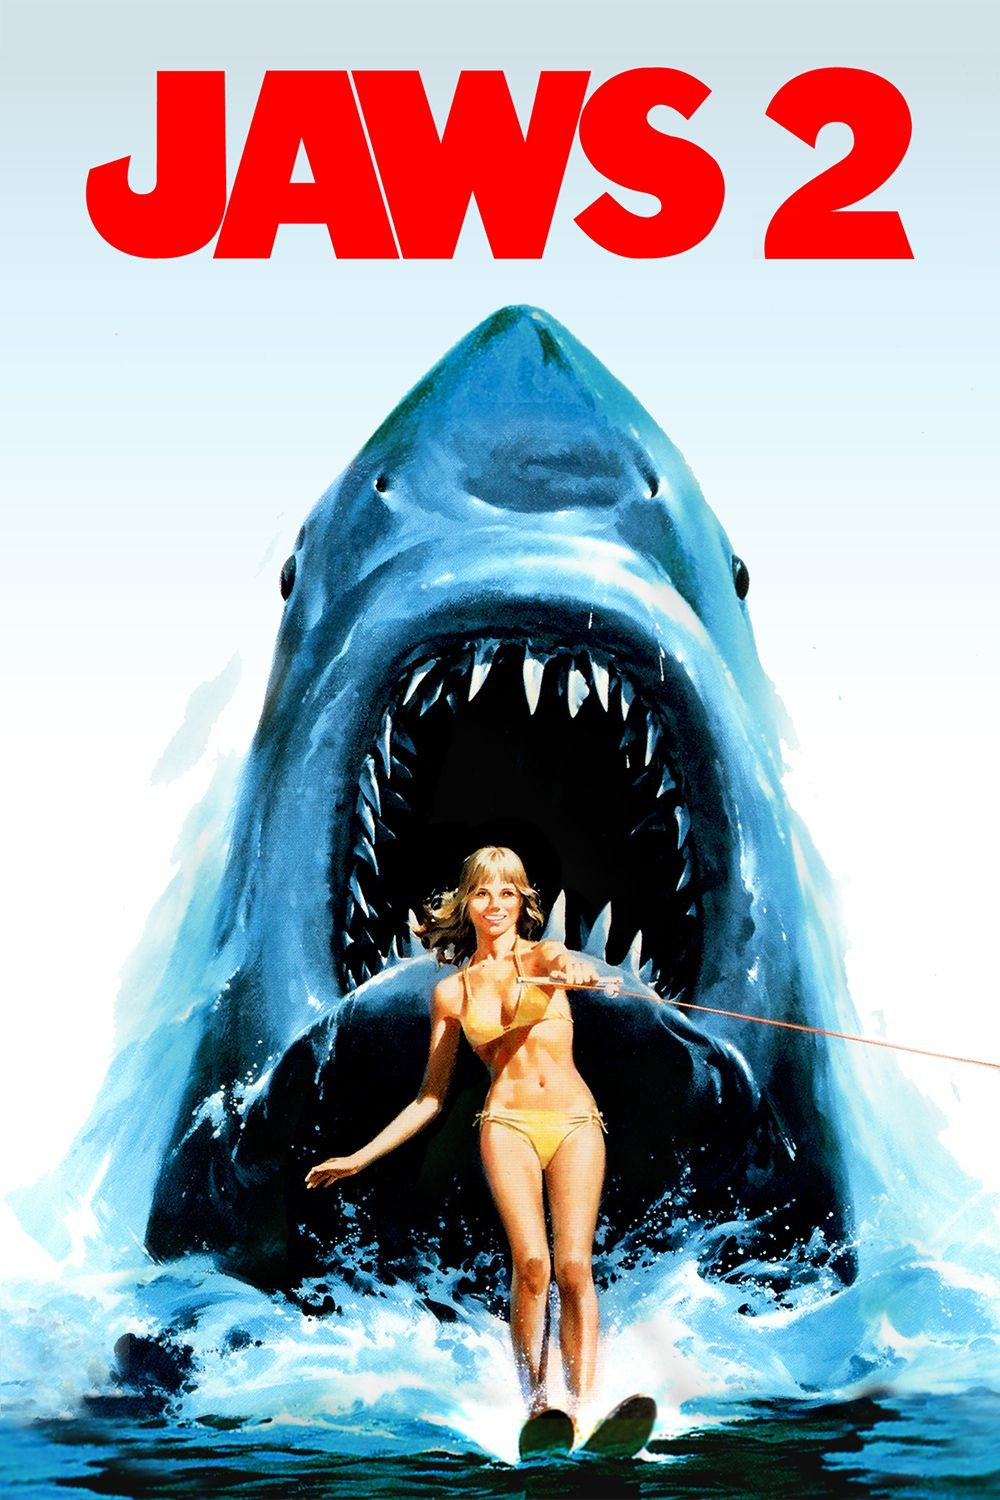 Jaws 2 (1978) Movie Review | Horror film, Movie and Horror